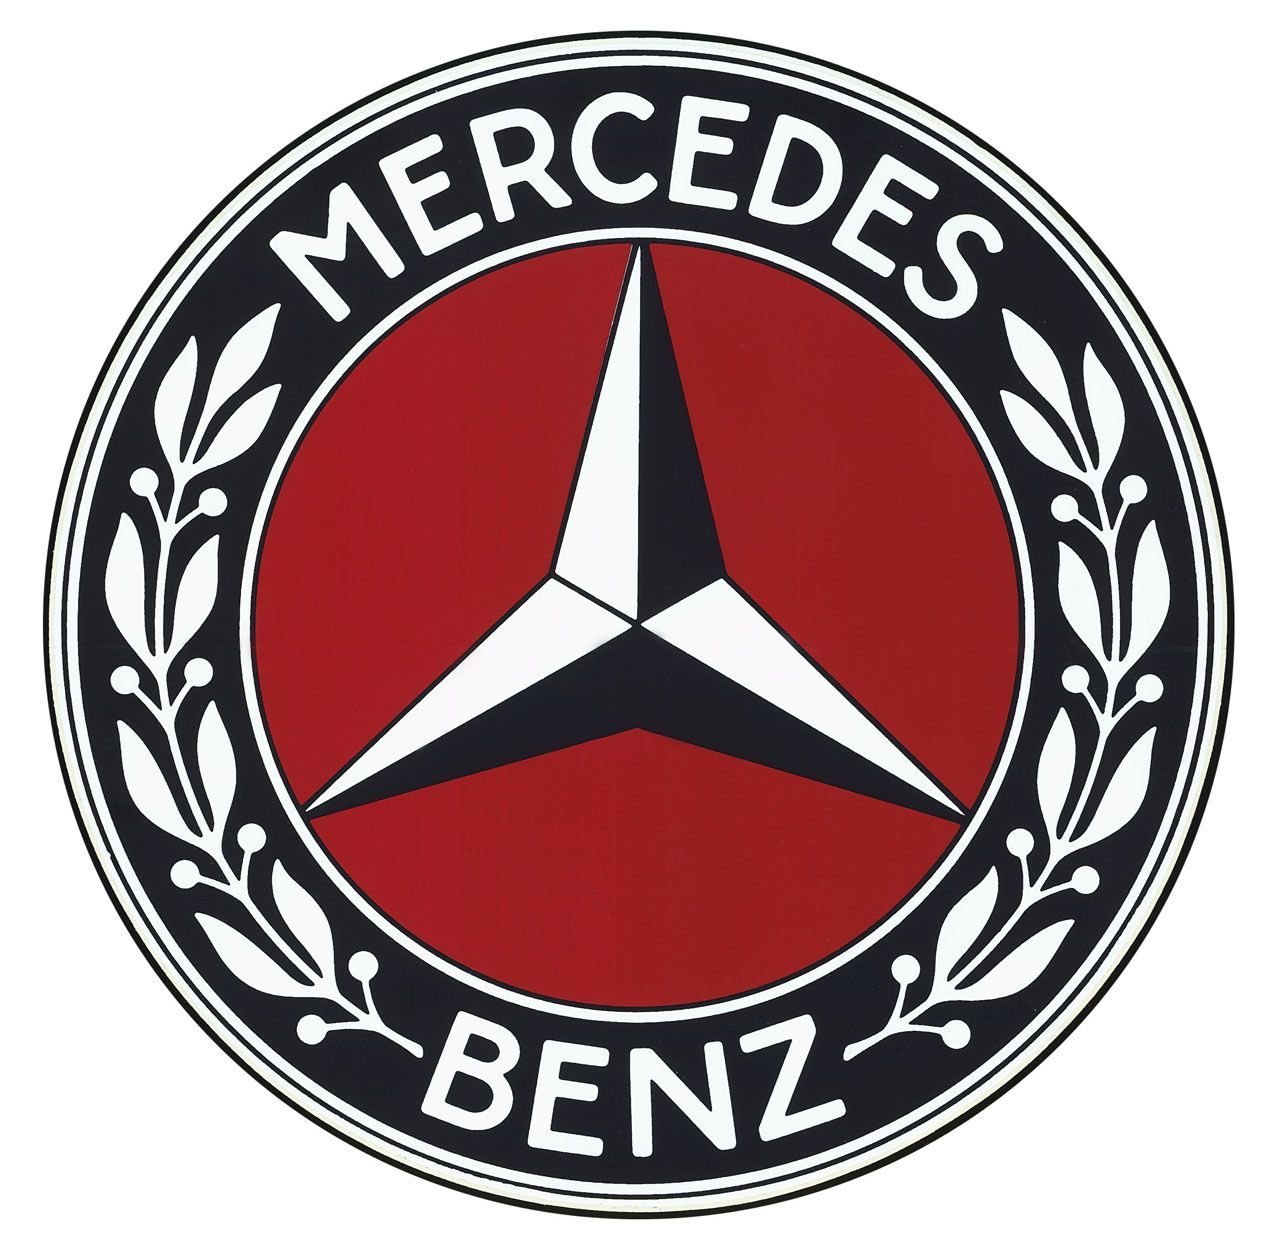 The Origins Of The Mercedes Benz 3 Pointed Star Logo Mercedes